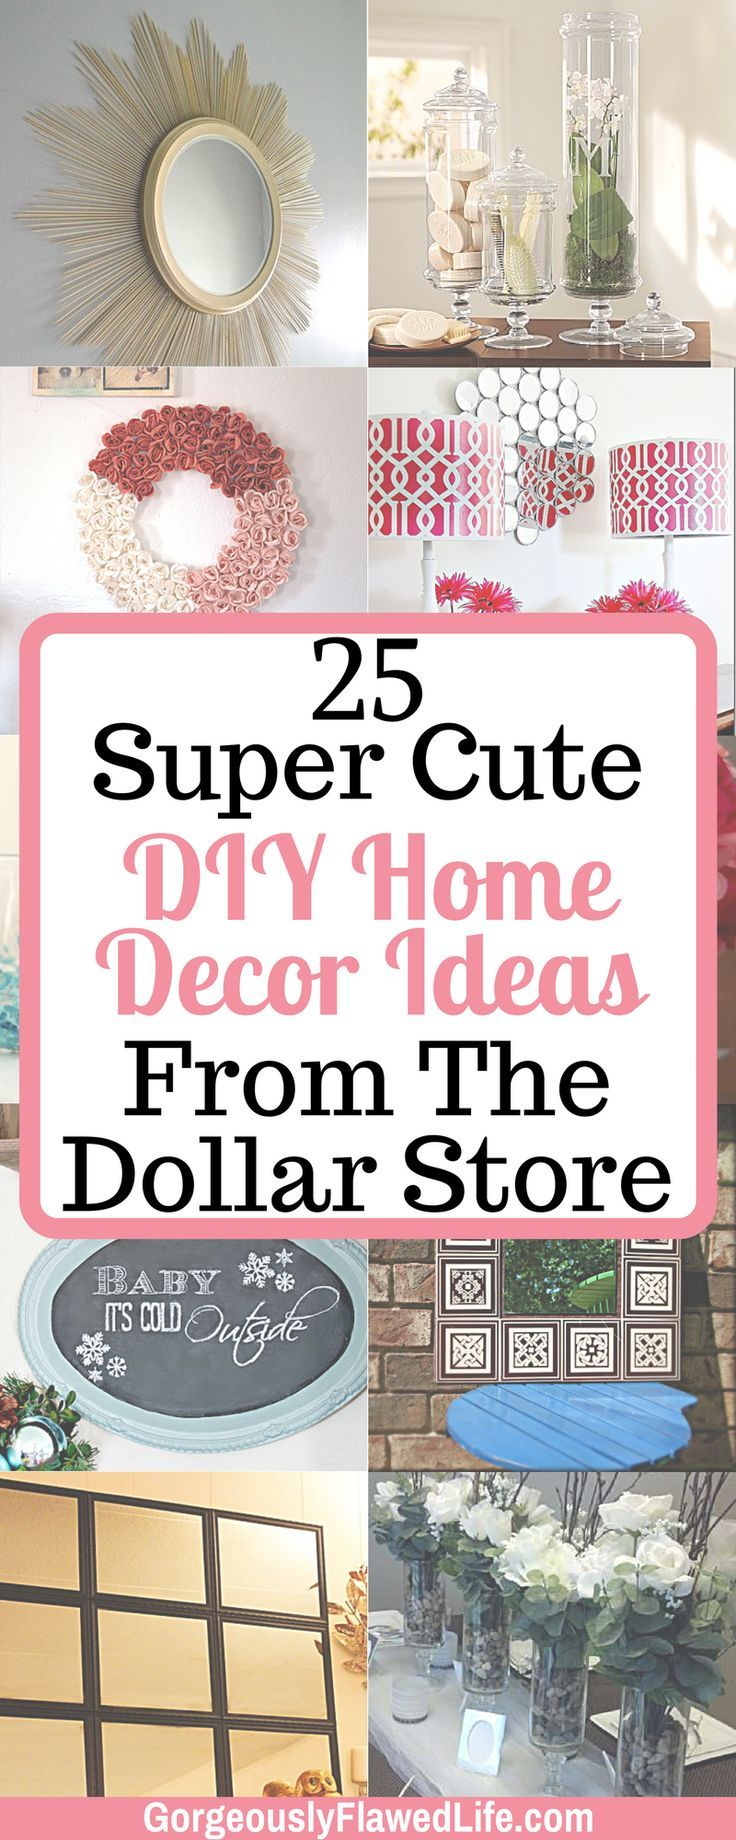 120 best decor ideas for my home images on pinterest budget 55 clever conversation starters budget home decoratingdiy